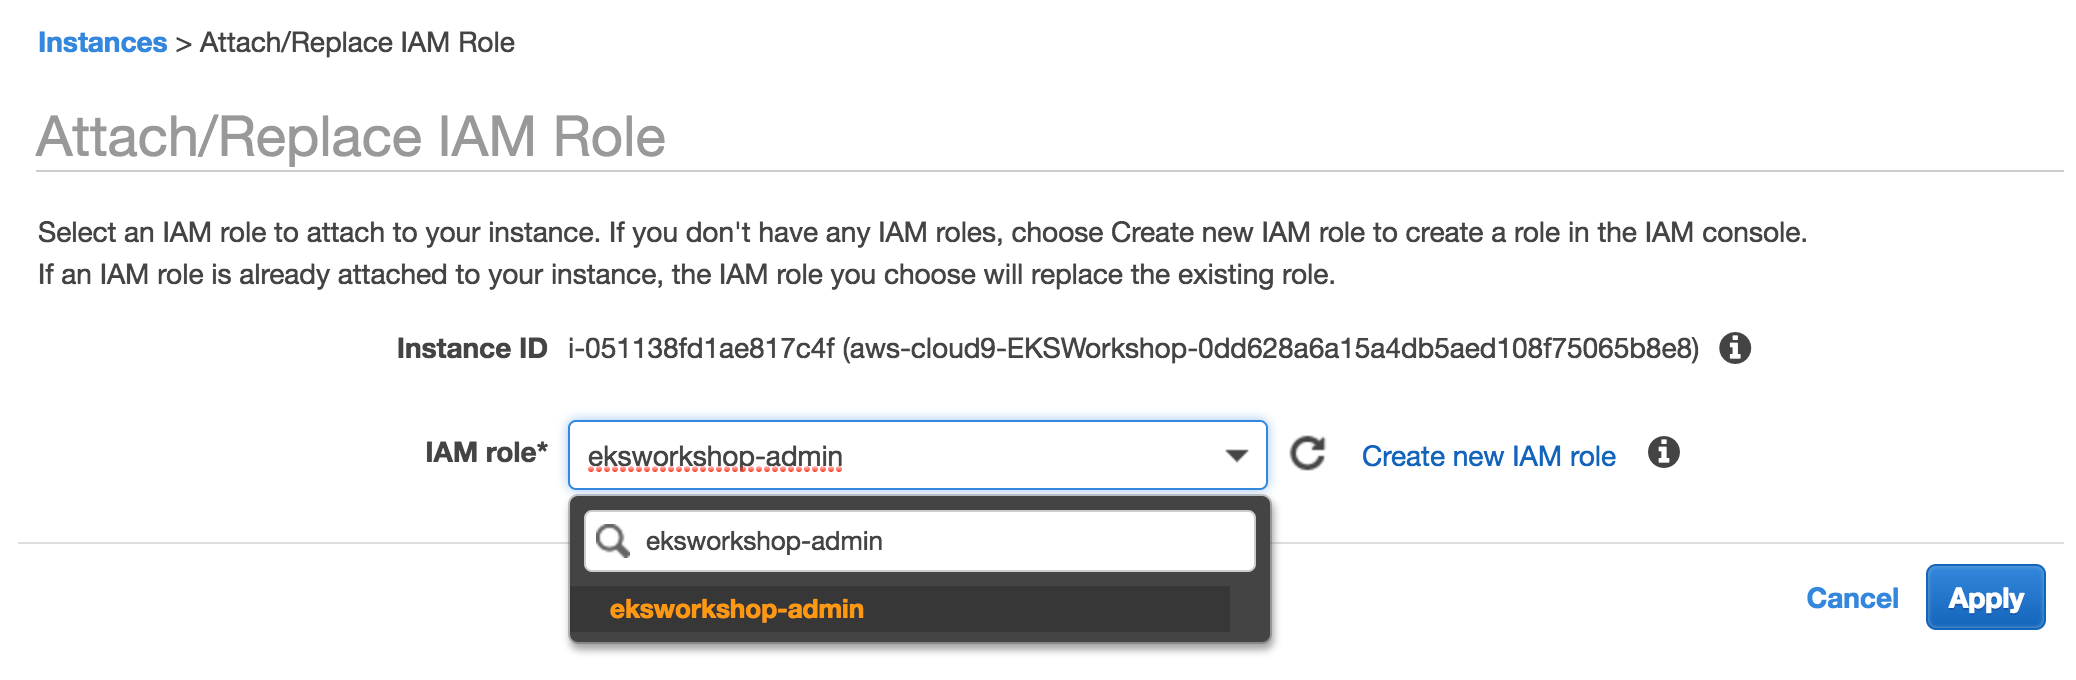 Attach the IAM role to your Workspace :: Amazon EKS Workshop